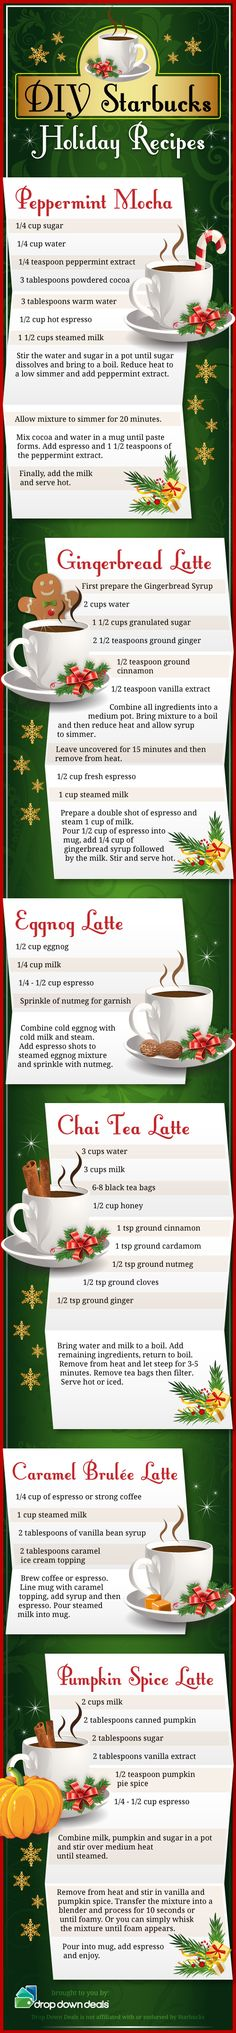 Are you a Starbucks fan? Here are some DIY Starbucks Holiday Recipes to enjoy this season! I love Starbucks but can not justify the pricing except maybe when in an airport! Nice list of recipes though-I am a espresso fan but not a sweetner. Fun Drinks, Yummy Drinks, Beverages, Yummy Food, Tasty, Drinks Alcohol, Holiday Treats, Christmas Treats, Holiday Recipes